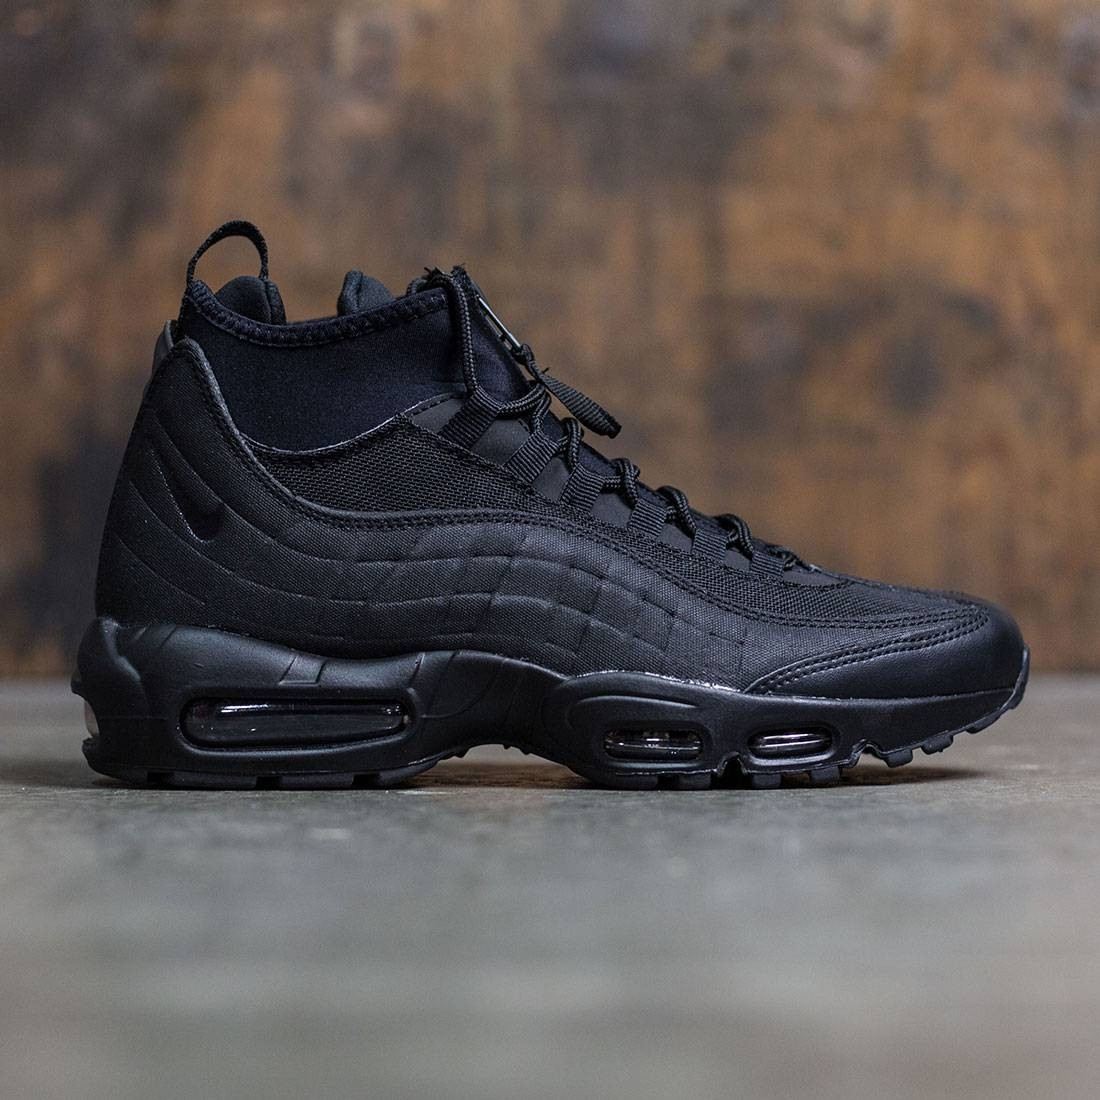 check out 6a7b6 71a8d Nike Men Air Max 95 Sneakerboot (black / black)